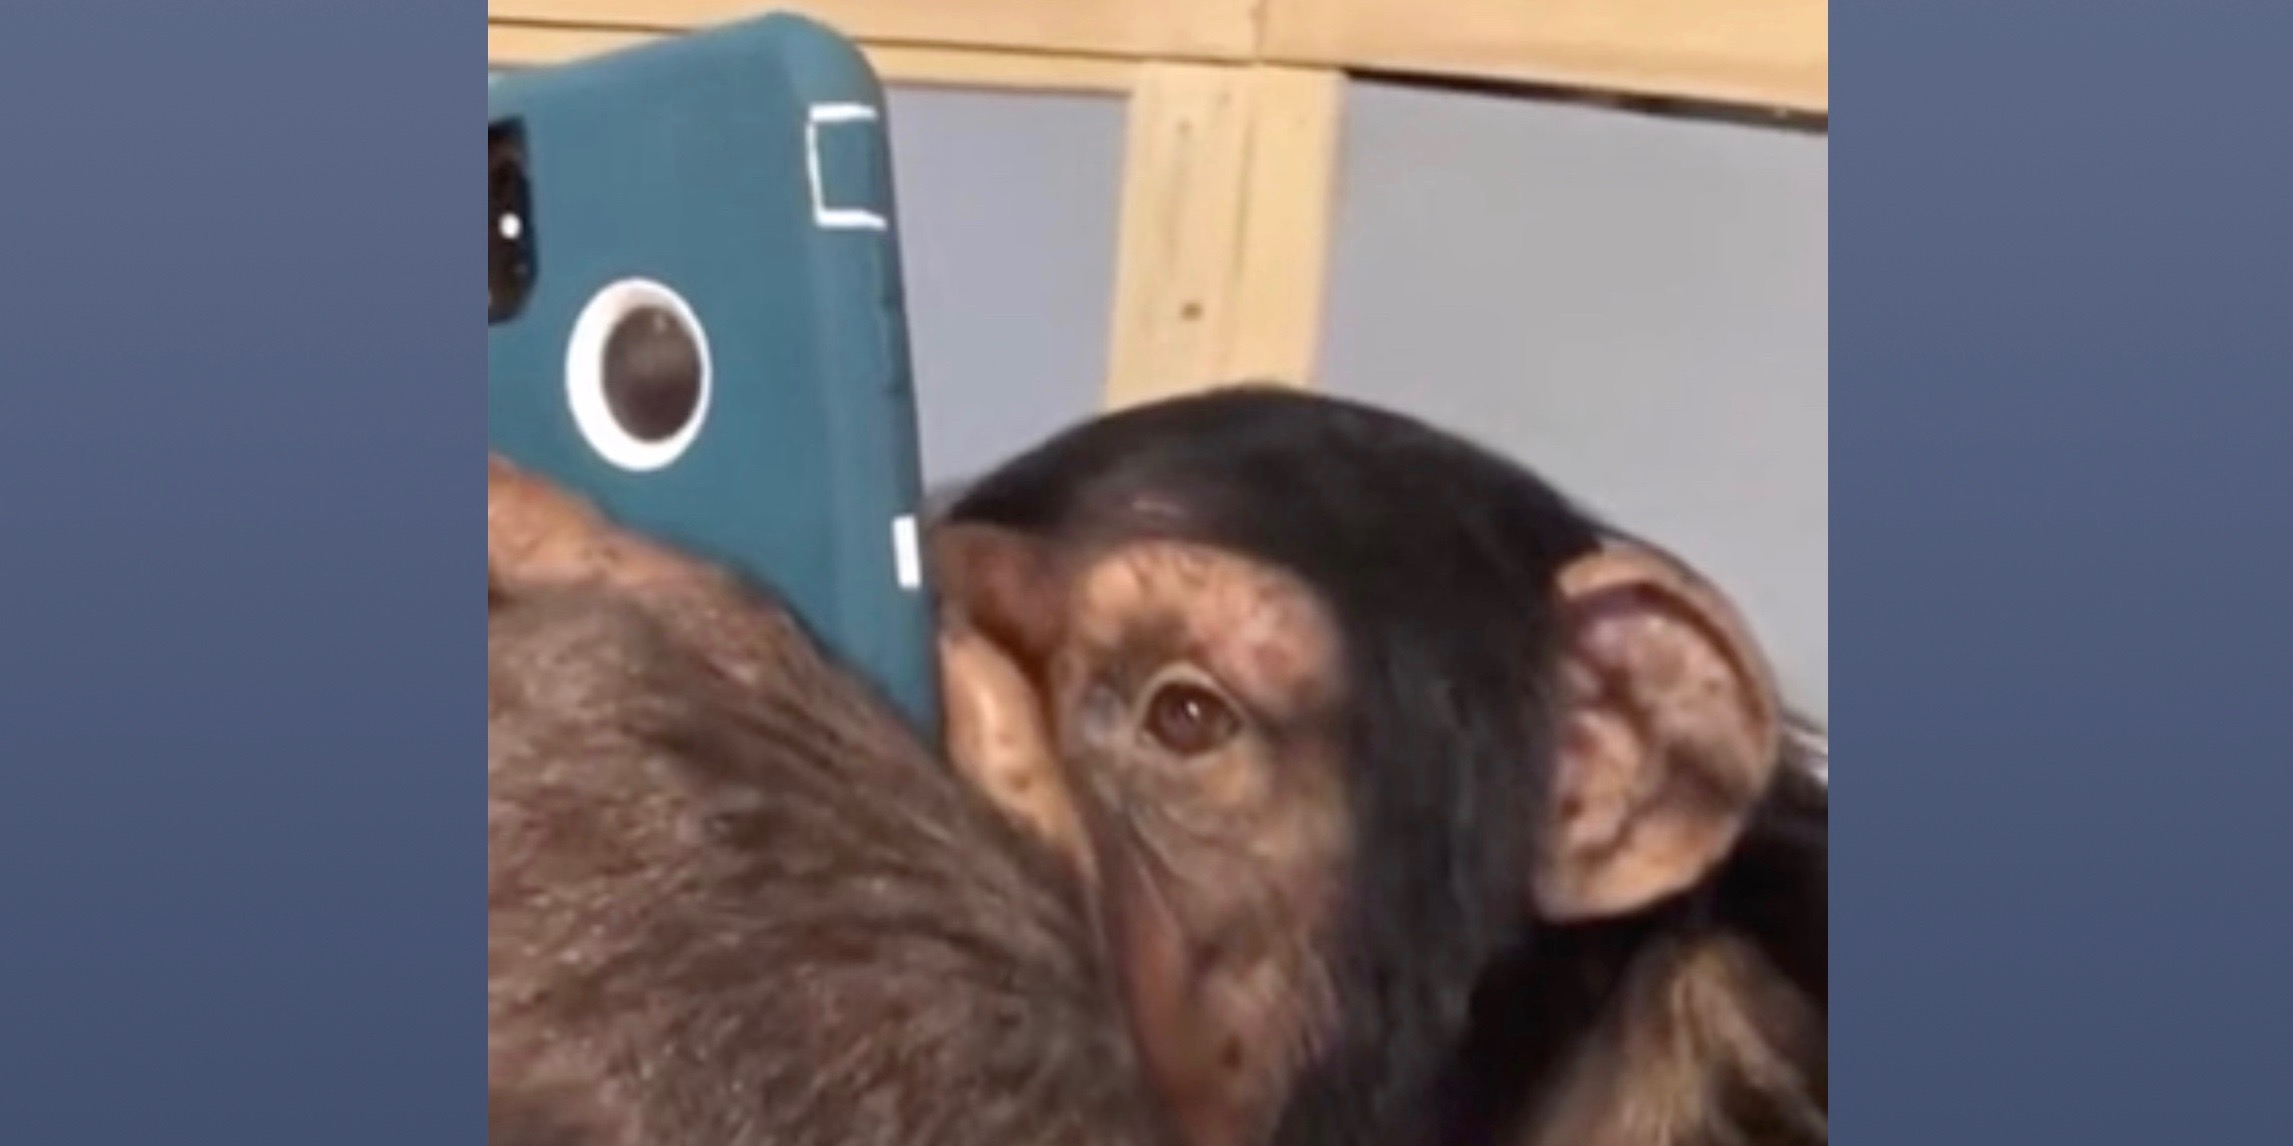 Chimpanzee browsing Instagram on iPhone with precision goes viral [Video]